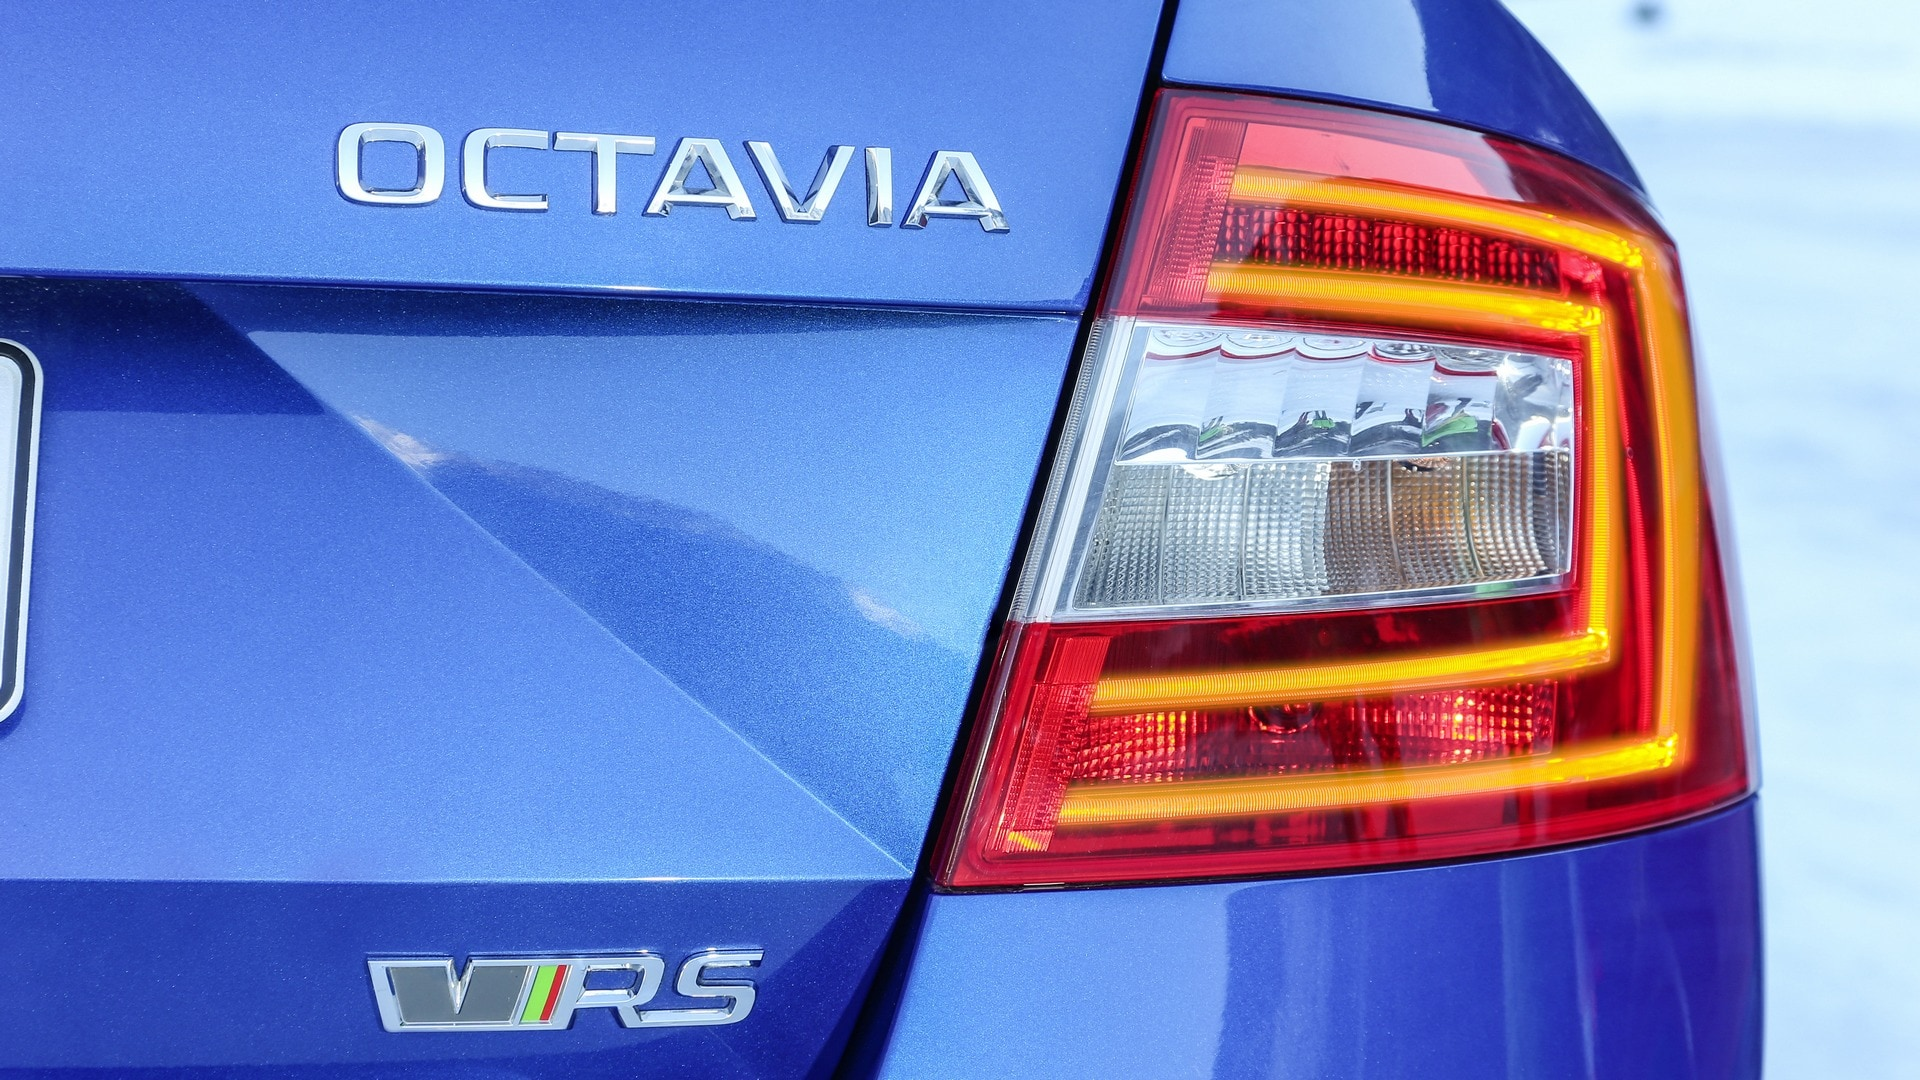 A closer look at the LED lamps on the back of the Skoda Octavia RS